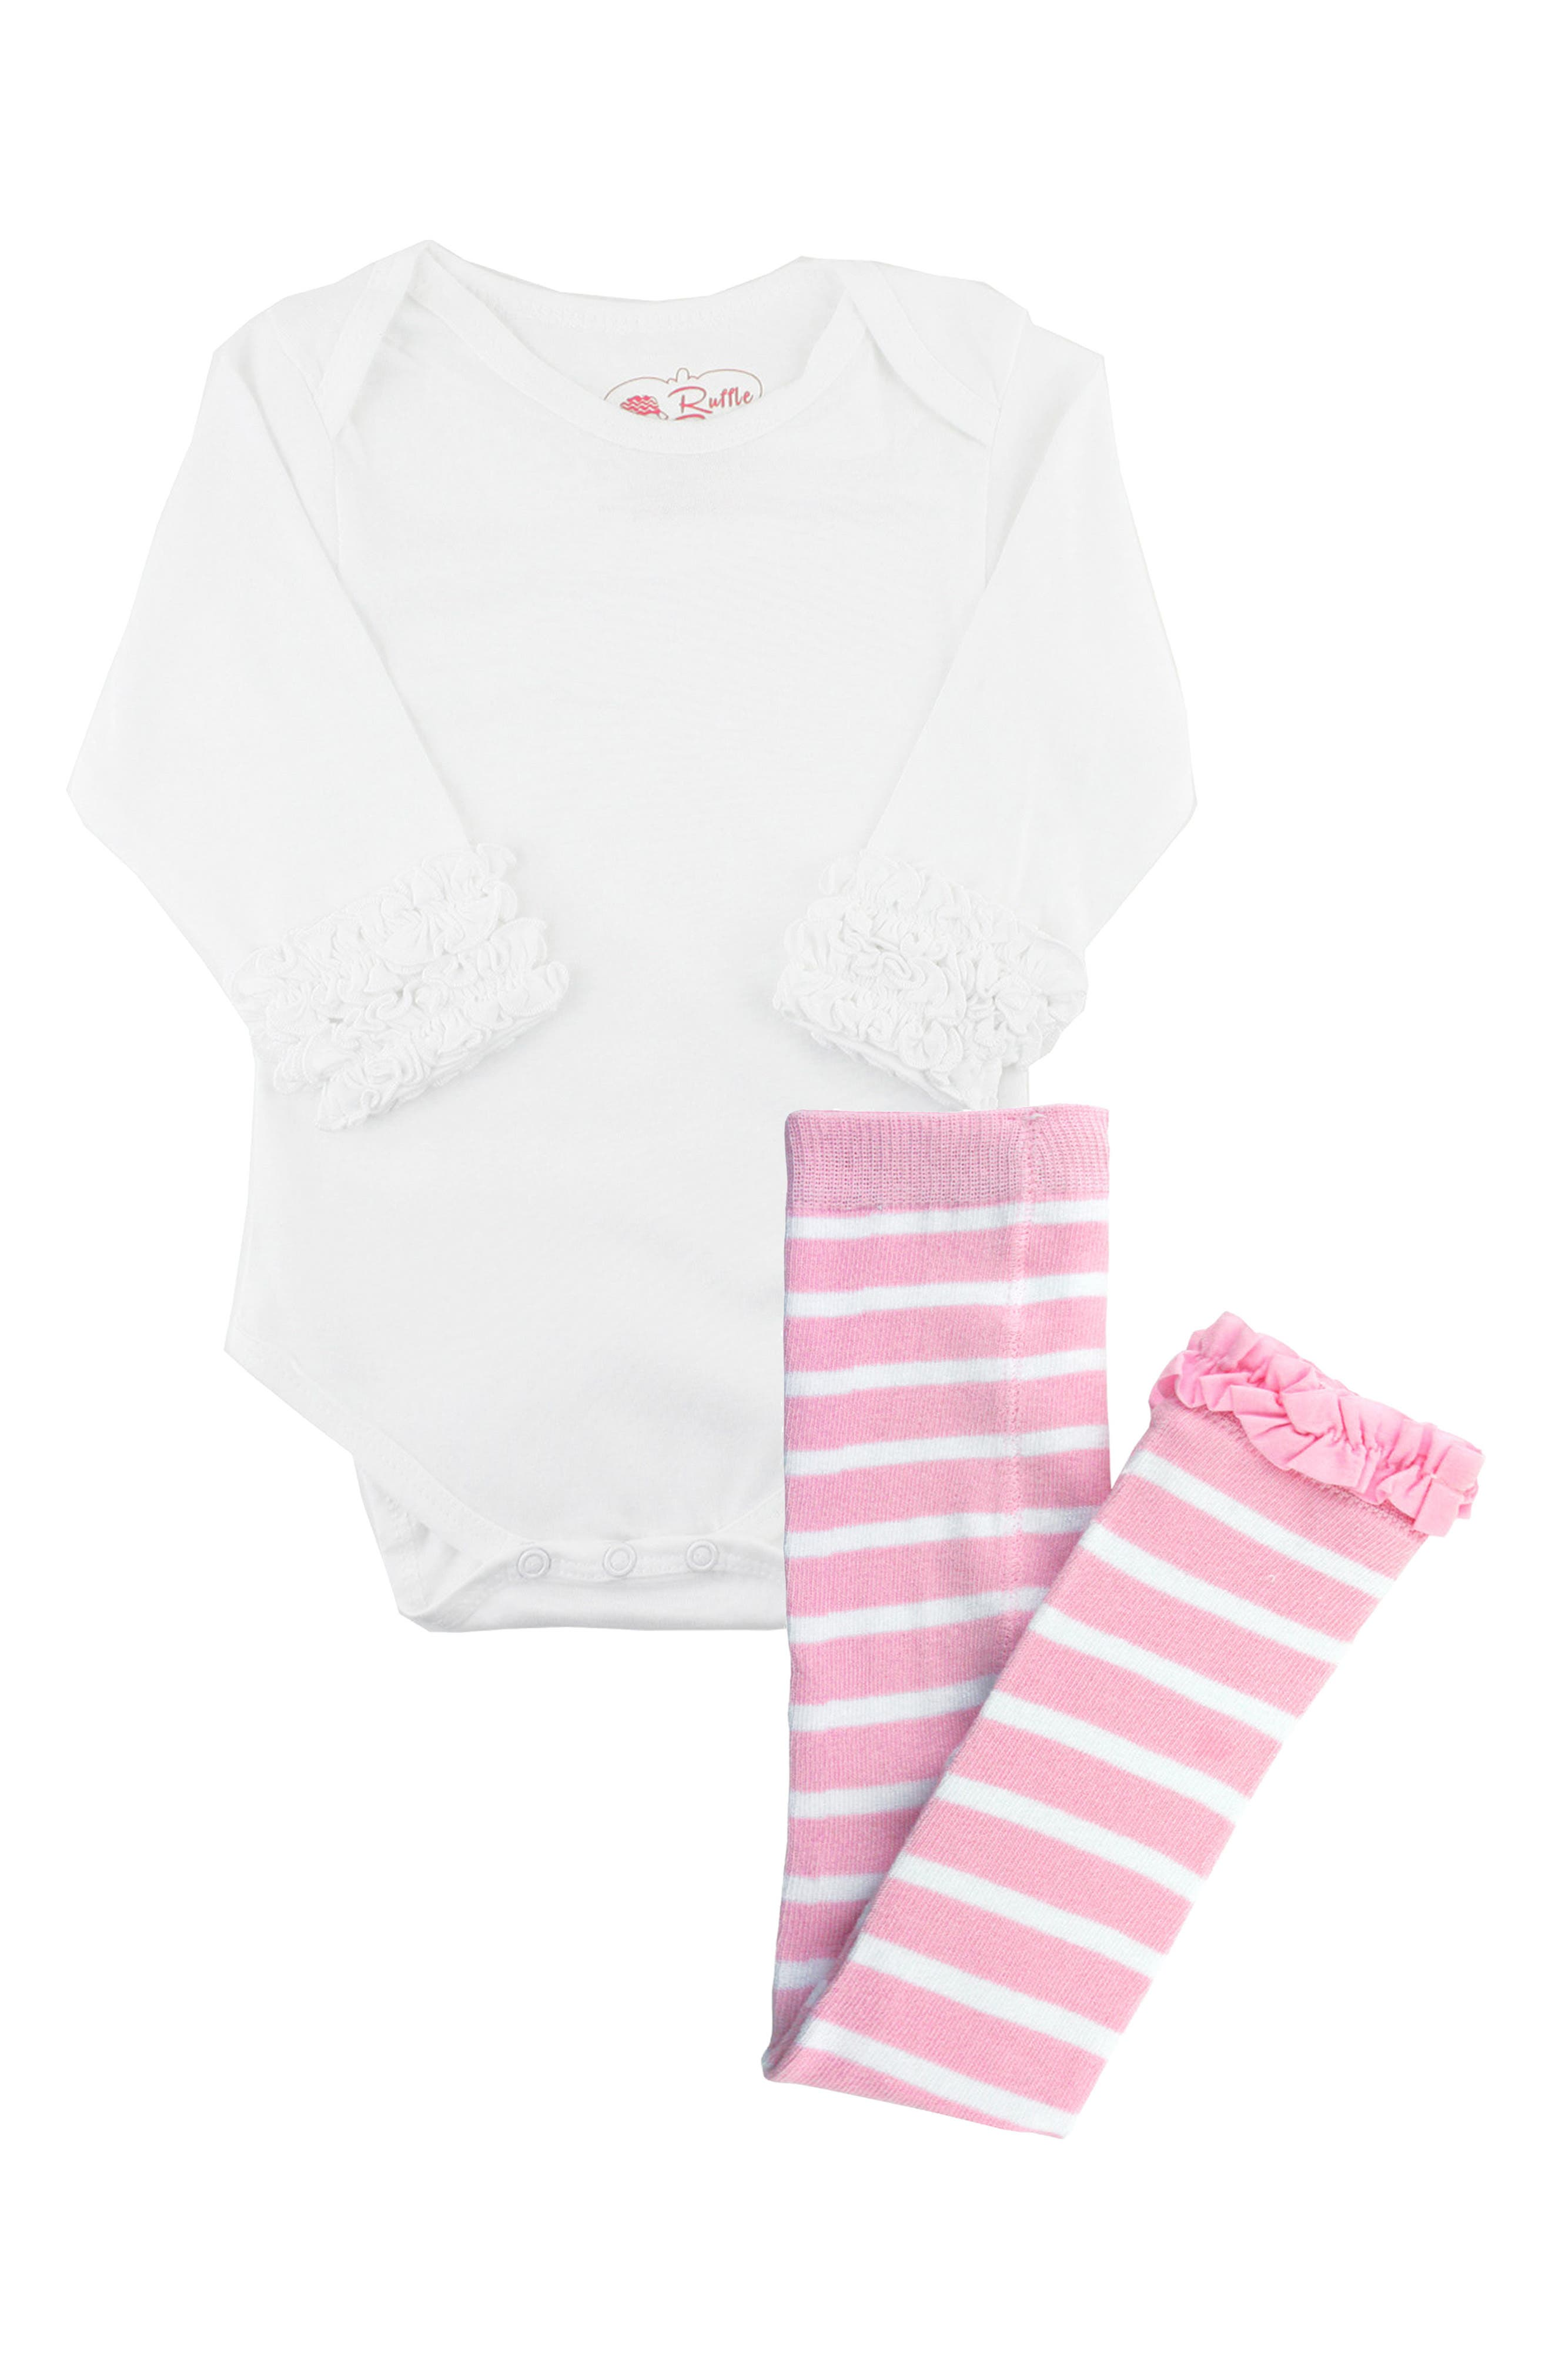 Abundant ruffles add endearing style to a long-sleeve cotton jersey bodysuit that pairs with striped tights for a perfect playtime style. Style Name: Rufflebutts Long Sleeve Bodysuit & Stripe Tights Set (Baby). Style Number: 5828456. Available in stores.